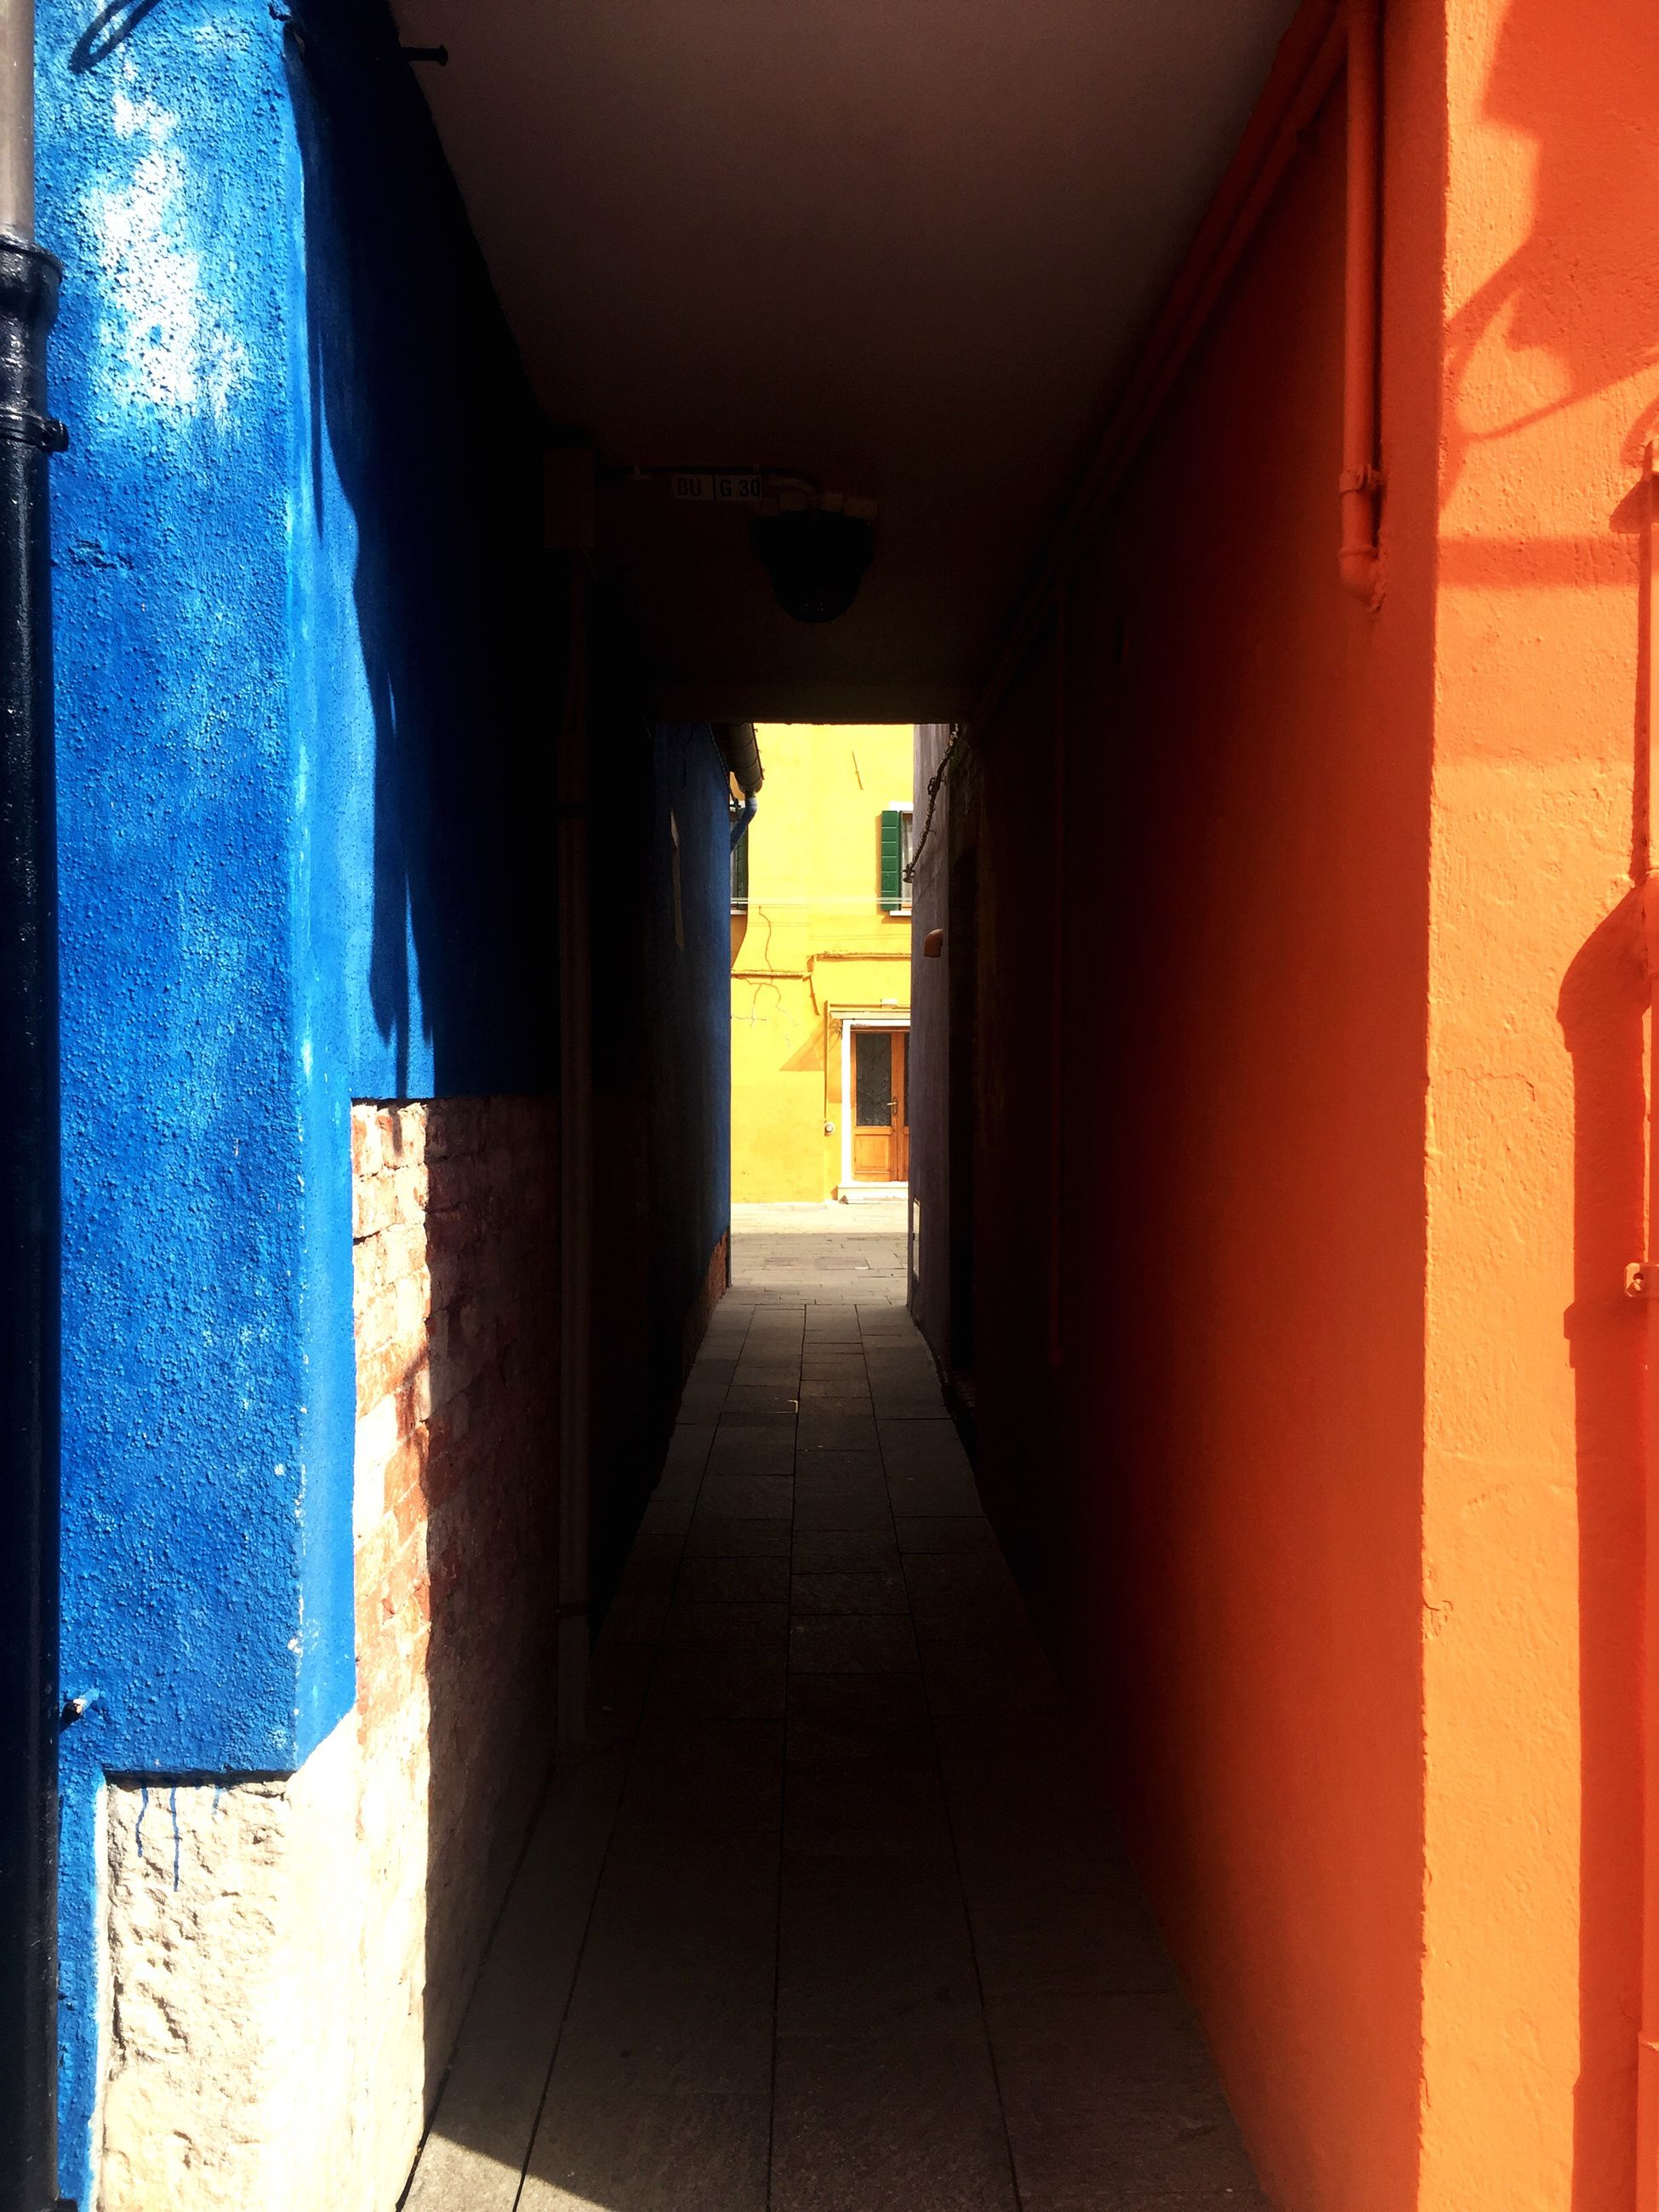 architecture, built structure, the way forward, indoors, corridor, narrow, empty, building exterior, diminishing perspective, door, building, wall - building feature, walkway, long, wall, arch, vanishing point, architectural column, absence, column